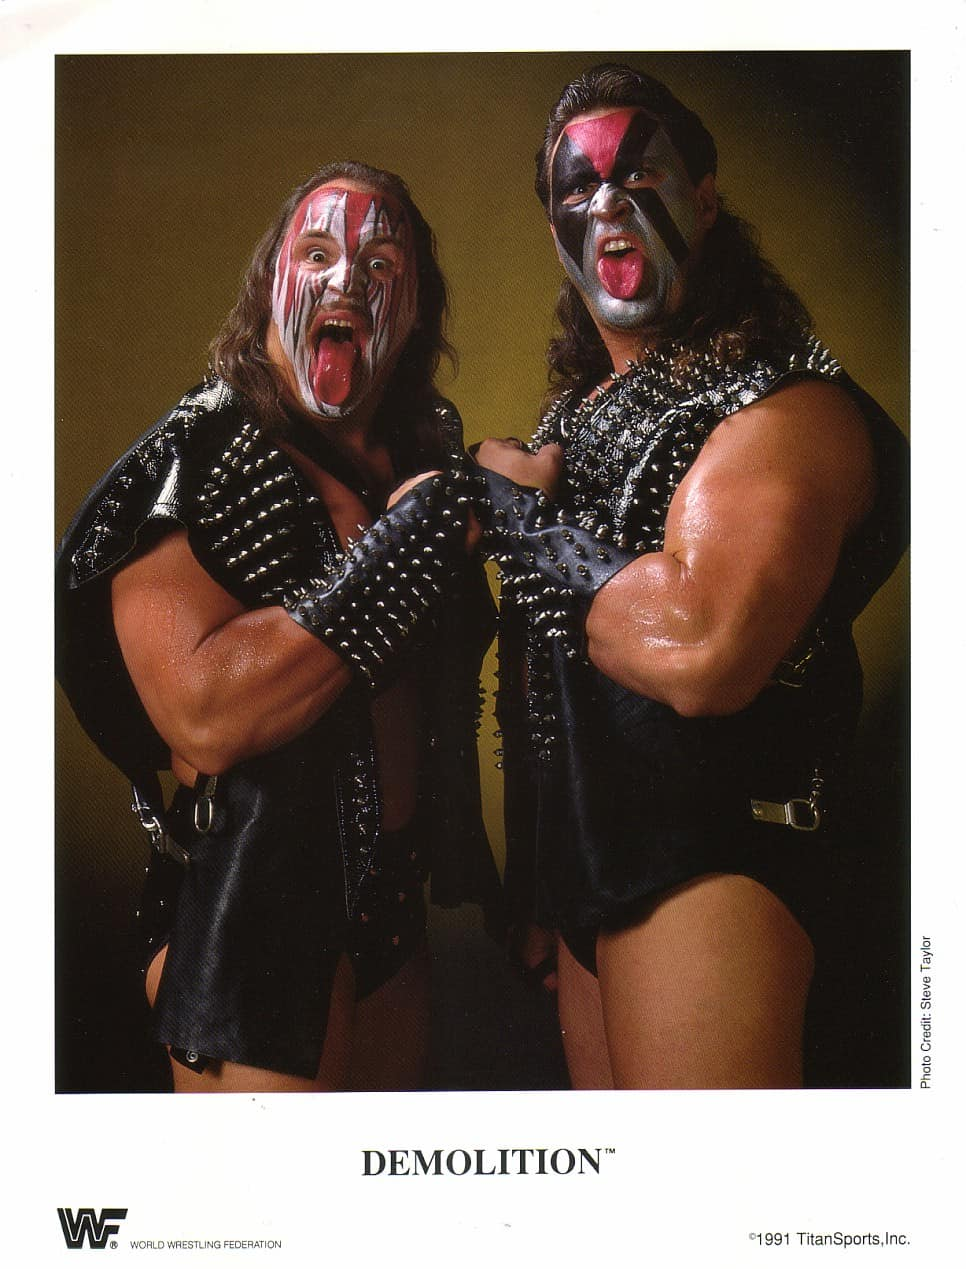 Tag Team Demolition (Crush and Smash version) in black leather studded vests, red black and silver makeup on their face and their tongues hanging out